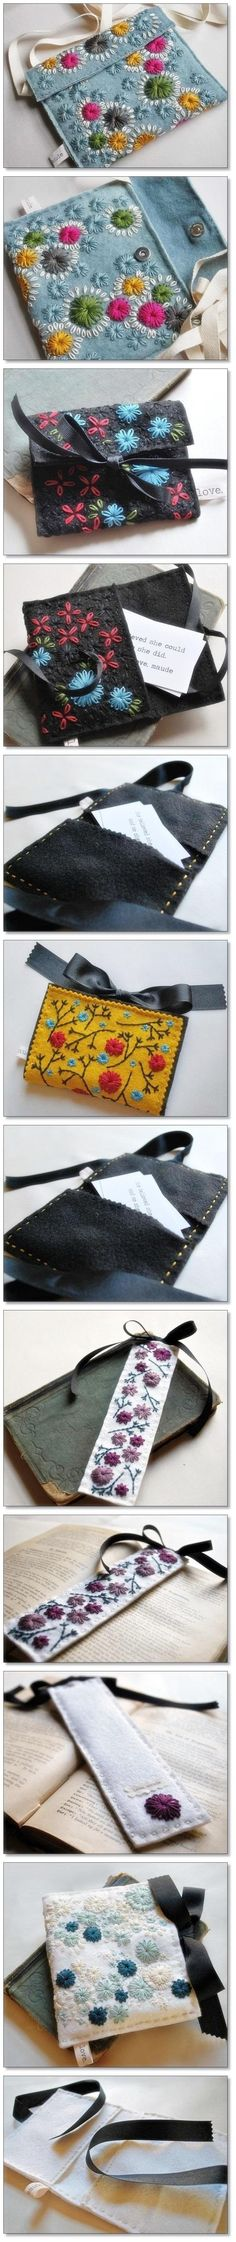 Wool Felt Accessory Gorgeous Embroidery ~ #diy #creative